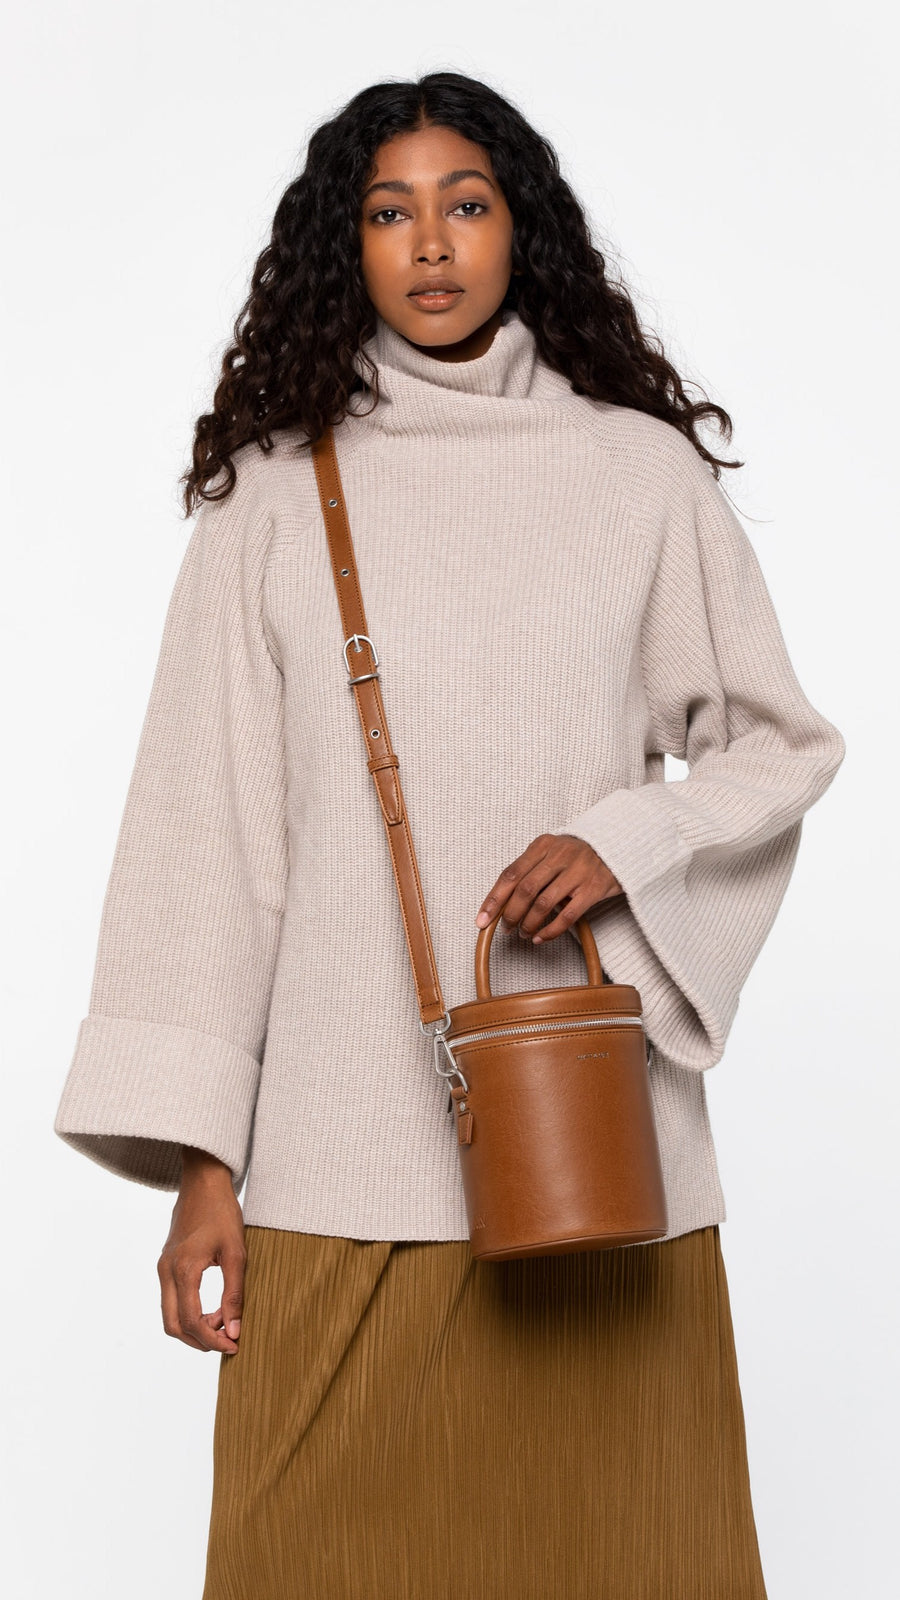 Matt & Nat DOV Drum Crossbody Bag in Chili